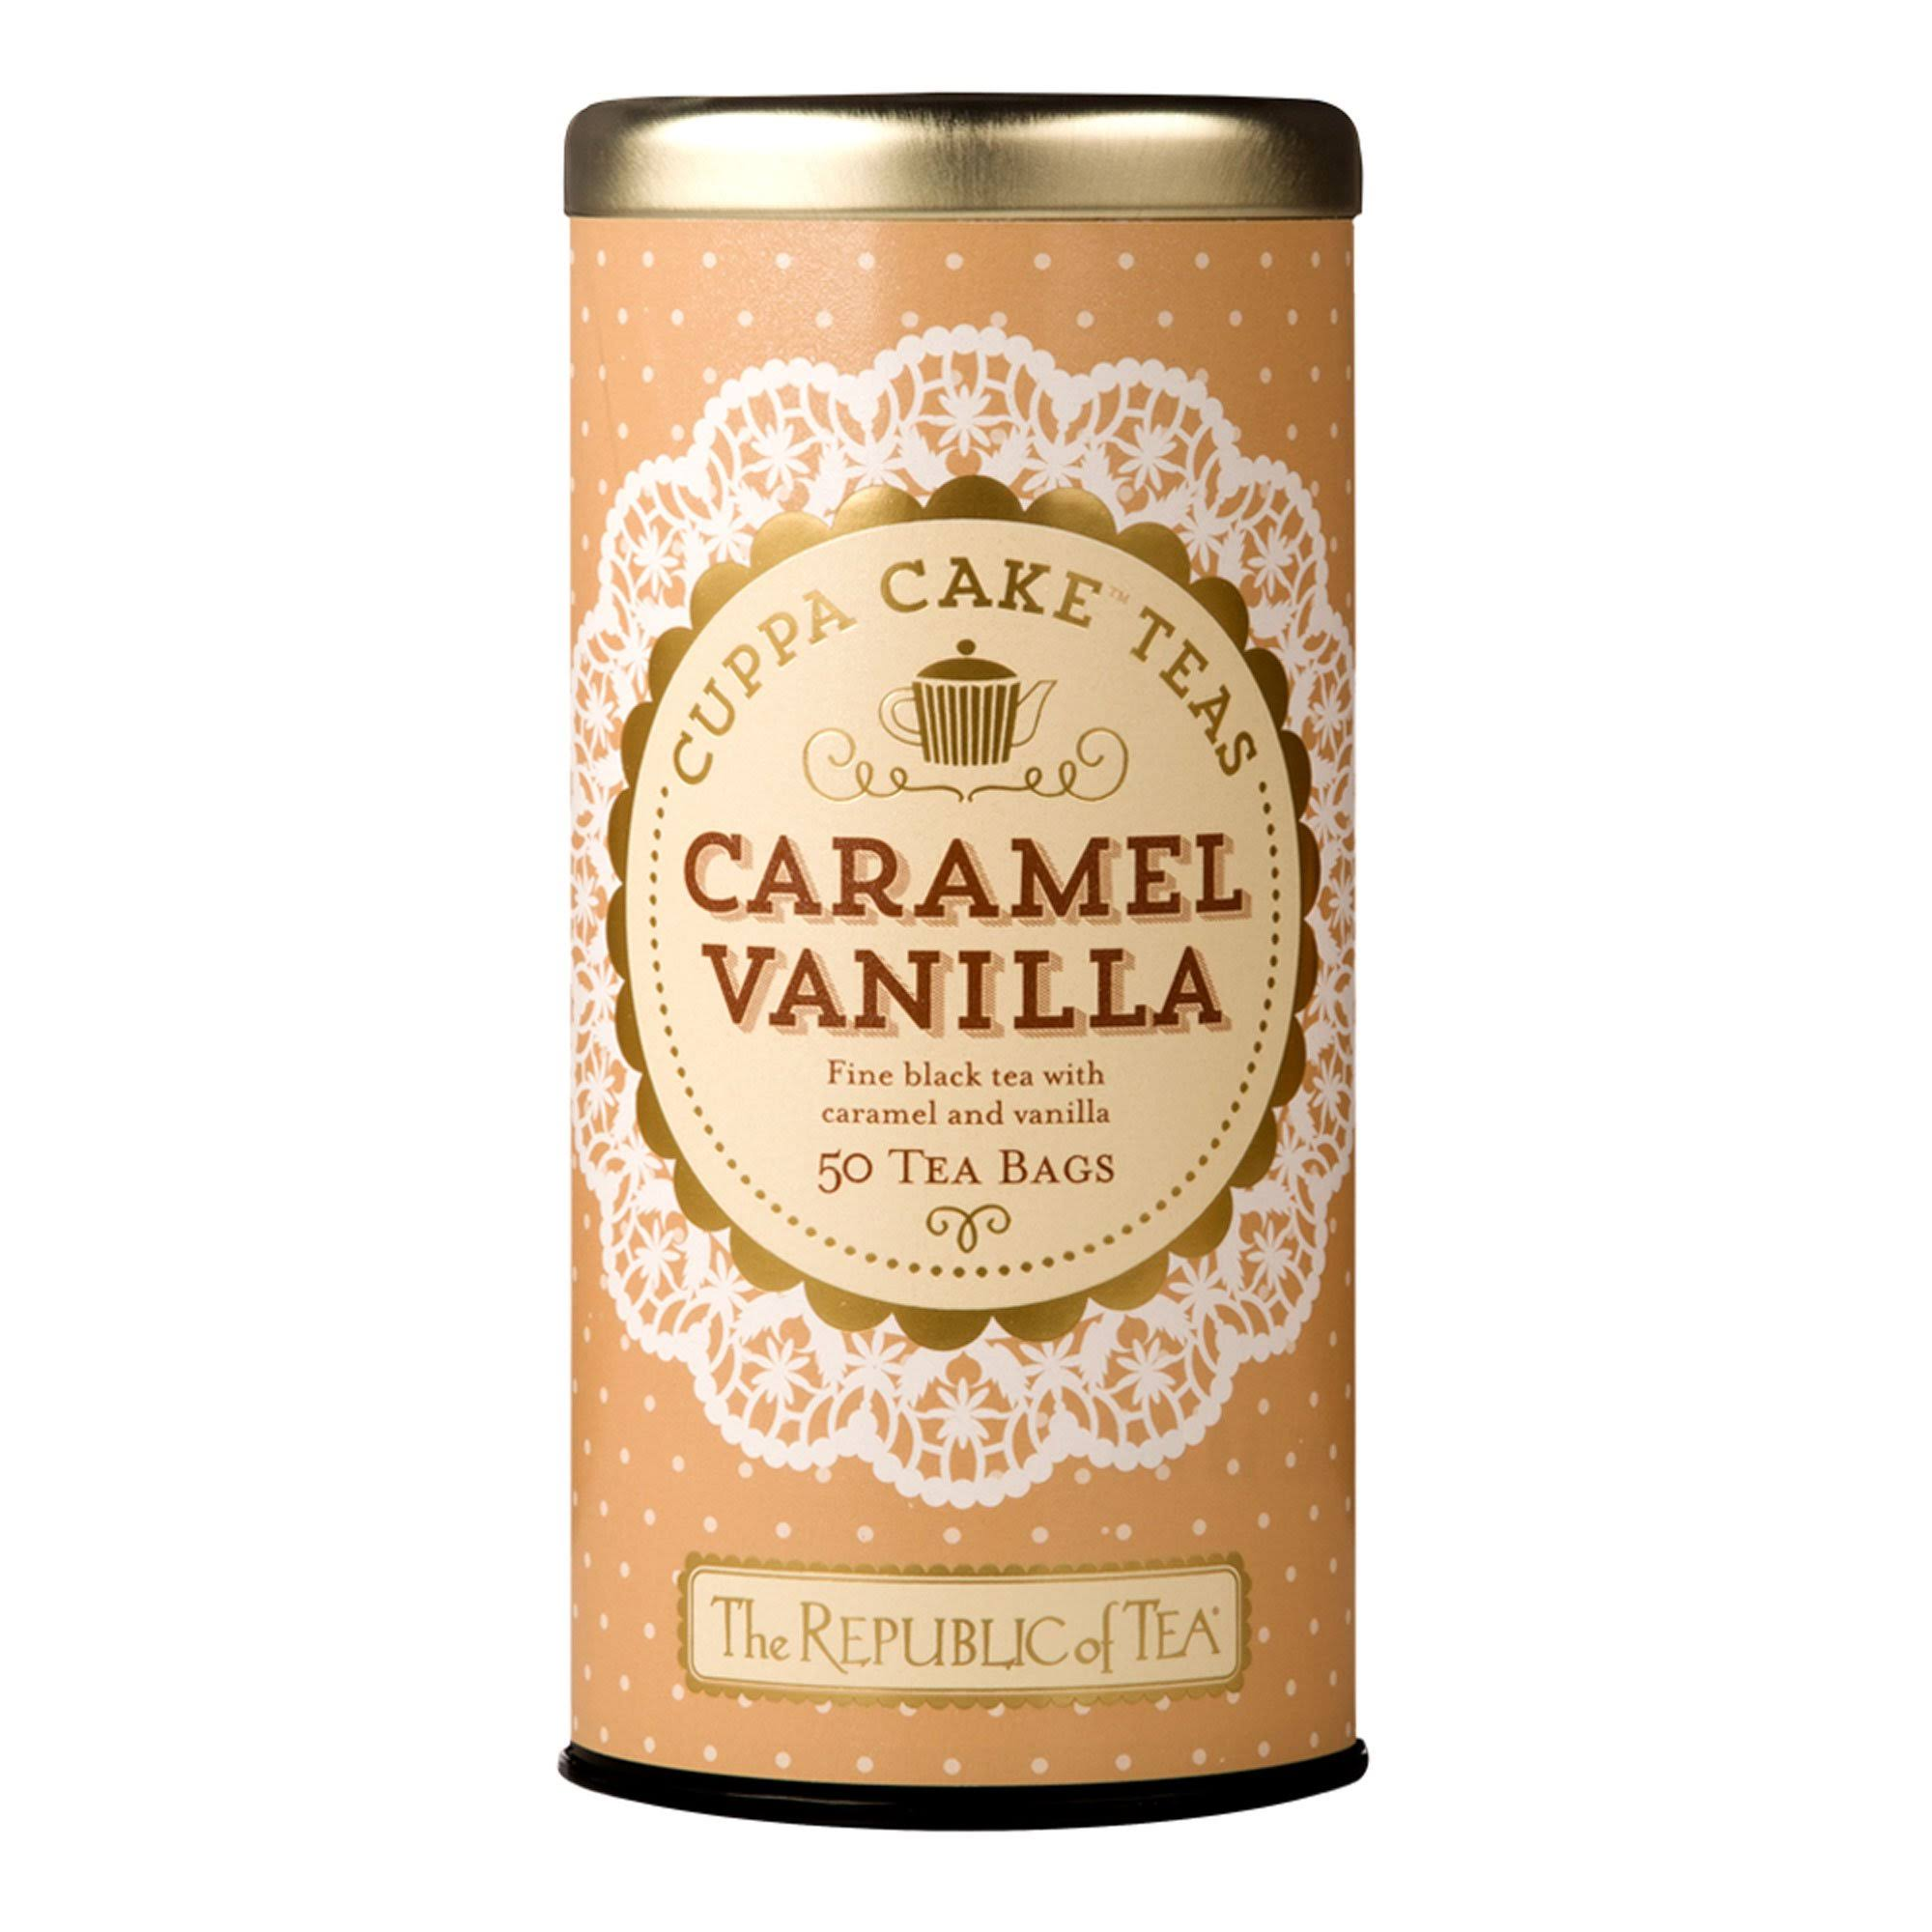 The Republic of Tea Cuppa Cake Tea - Caramel Vanilla, 50ct